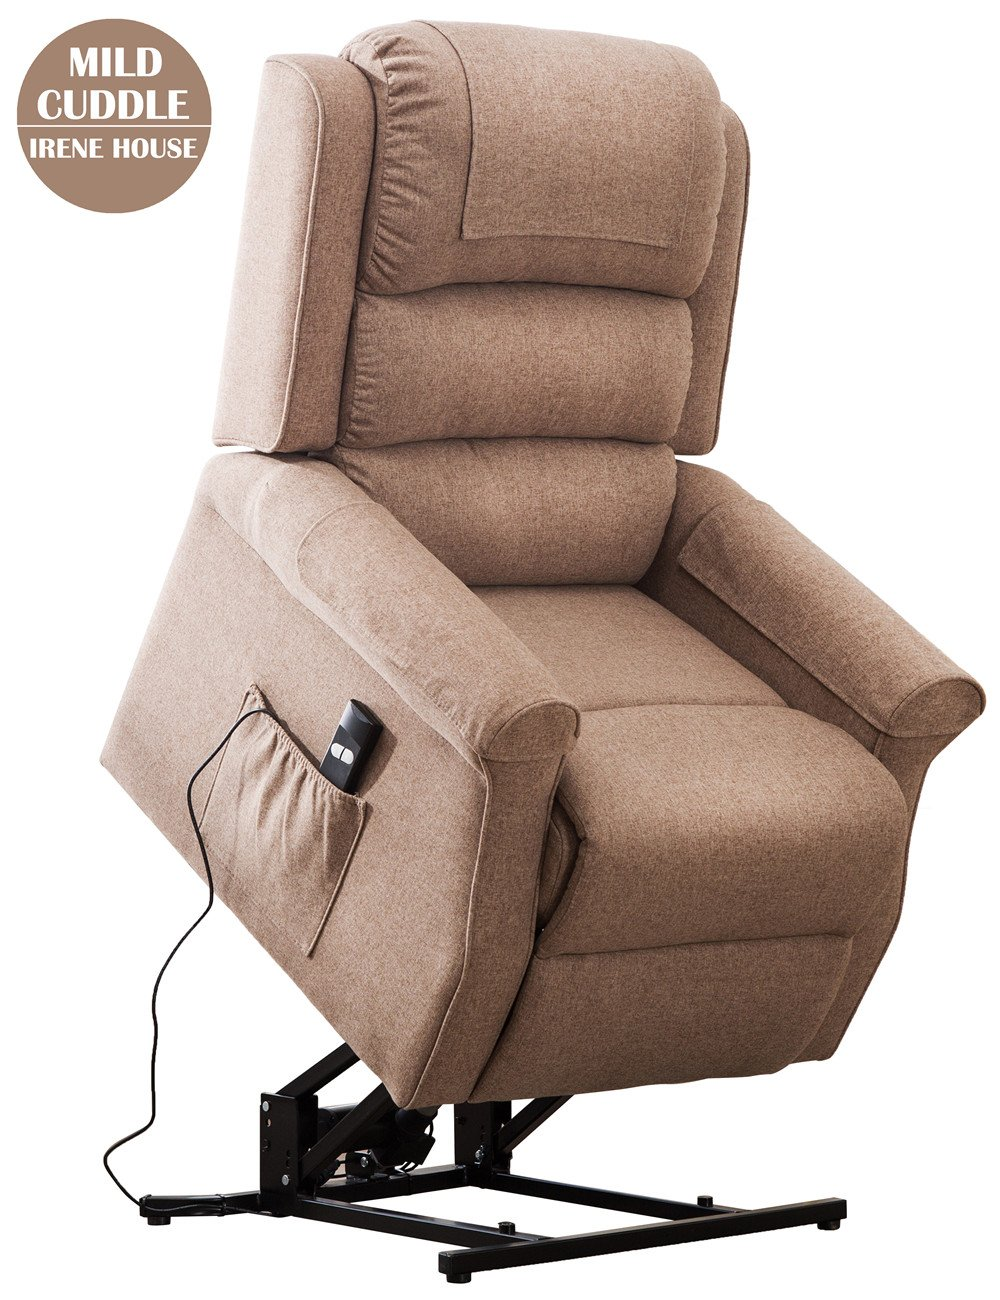 Irene House Modern Transitional Wall Hugger Lift Chair Recliners With Soft Linen (Brushed )Fabric(Light Brown)